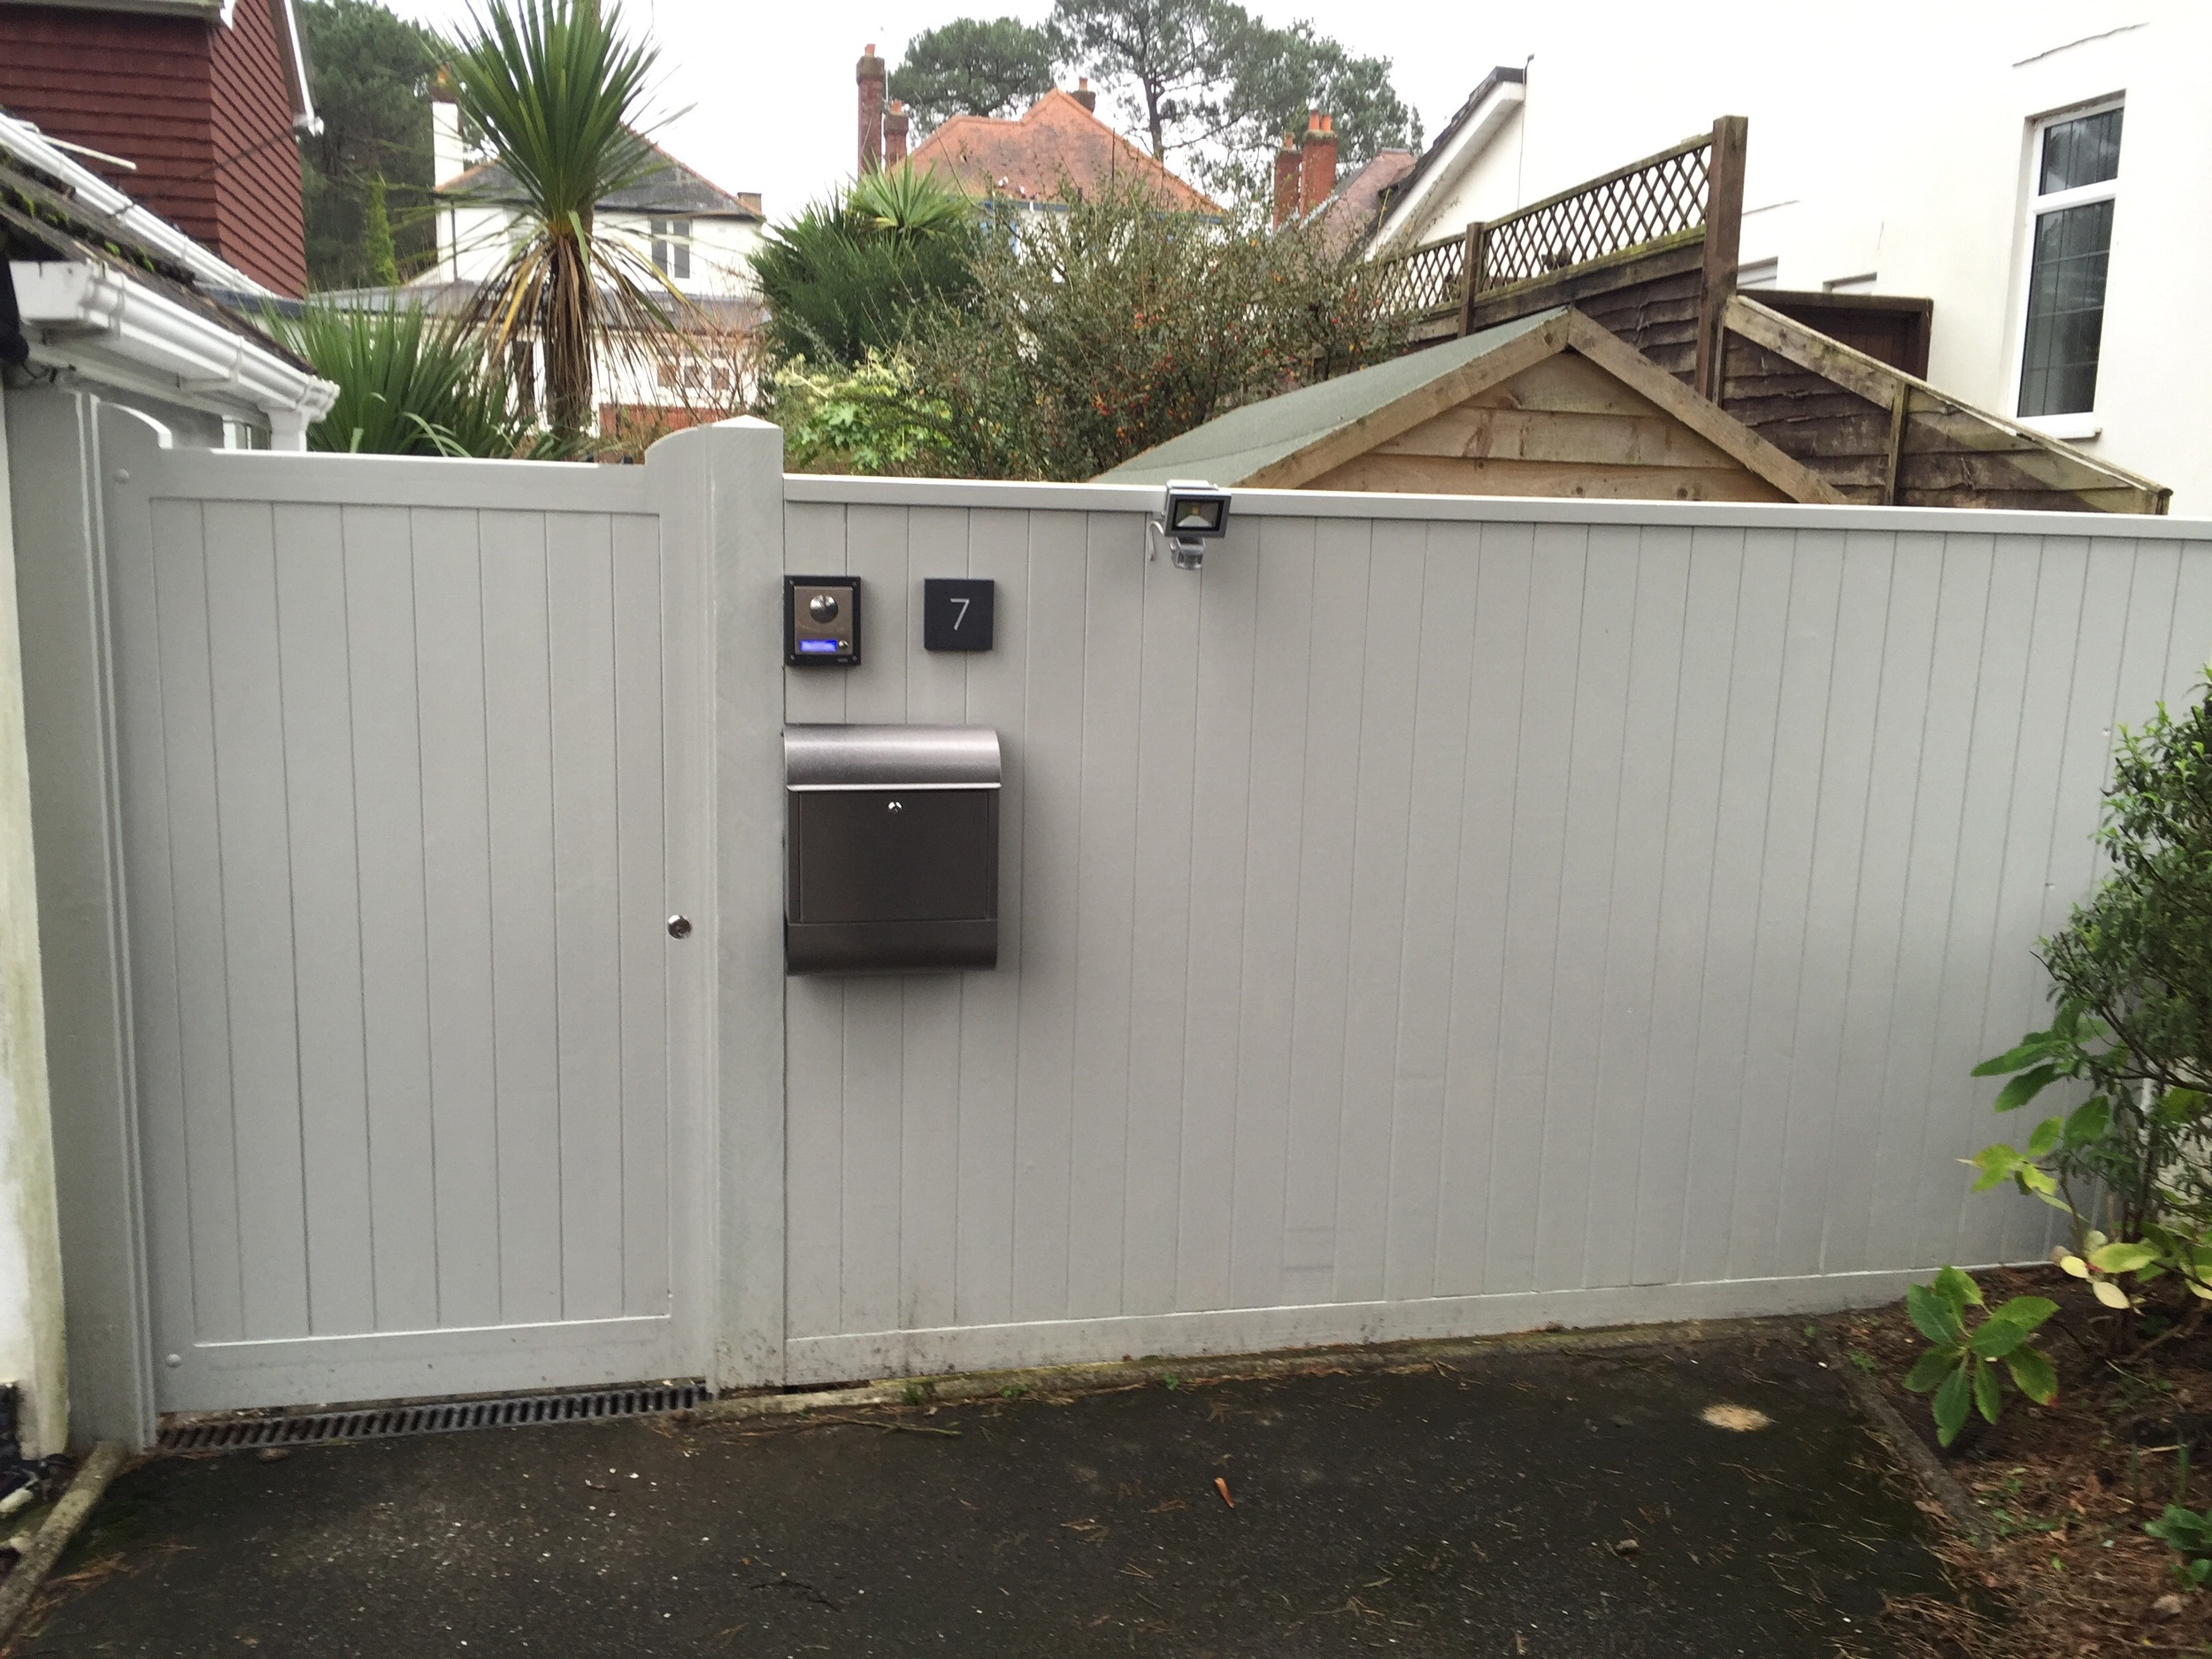 Showing after Customer paint job and automated opener fitted.